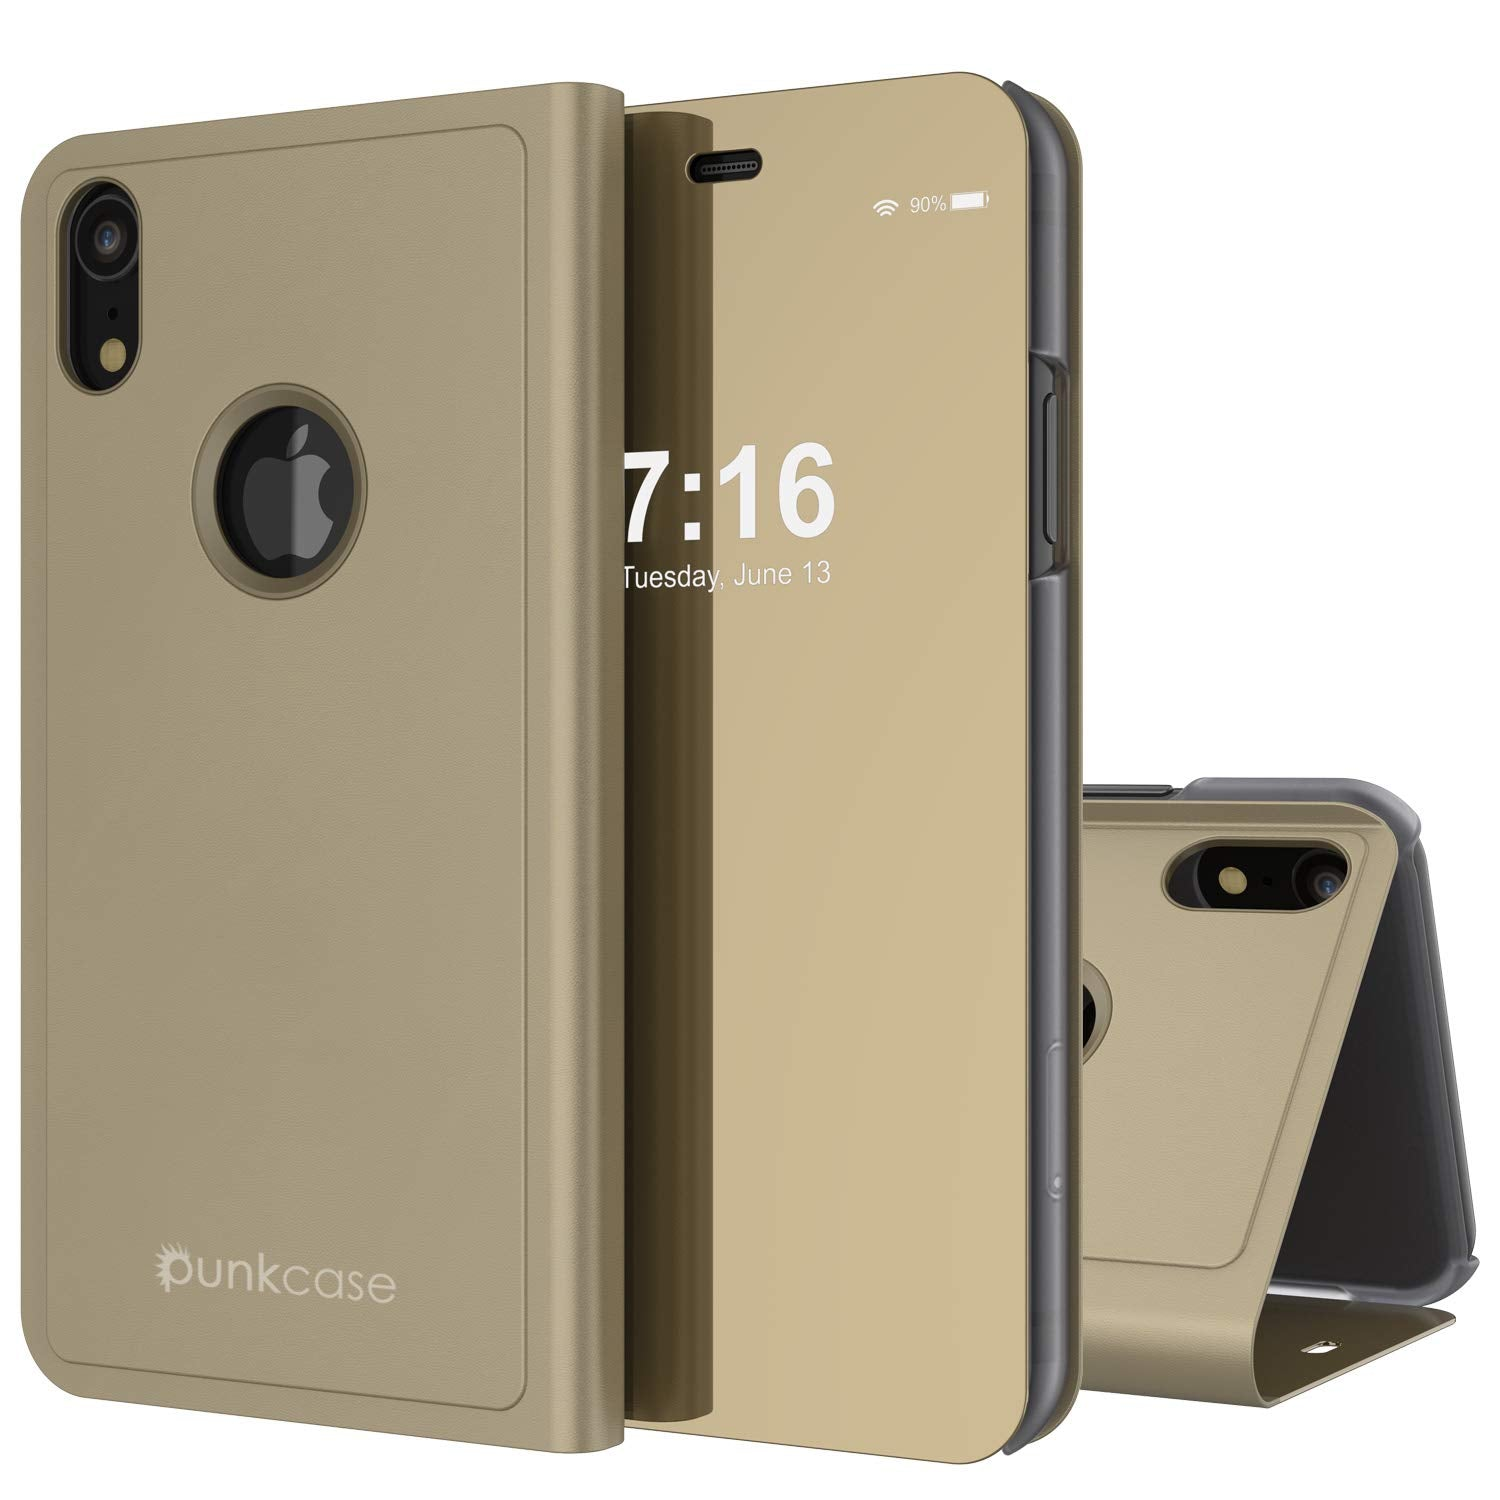 Punkcase iPhone XR Reflector Case Protective Flip Cover [Gold]